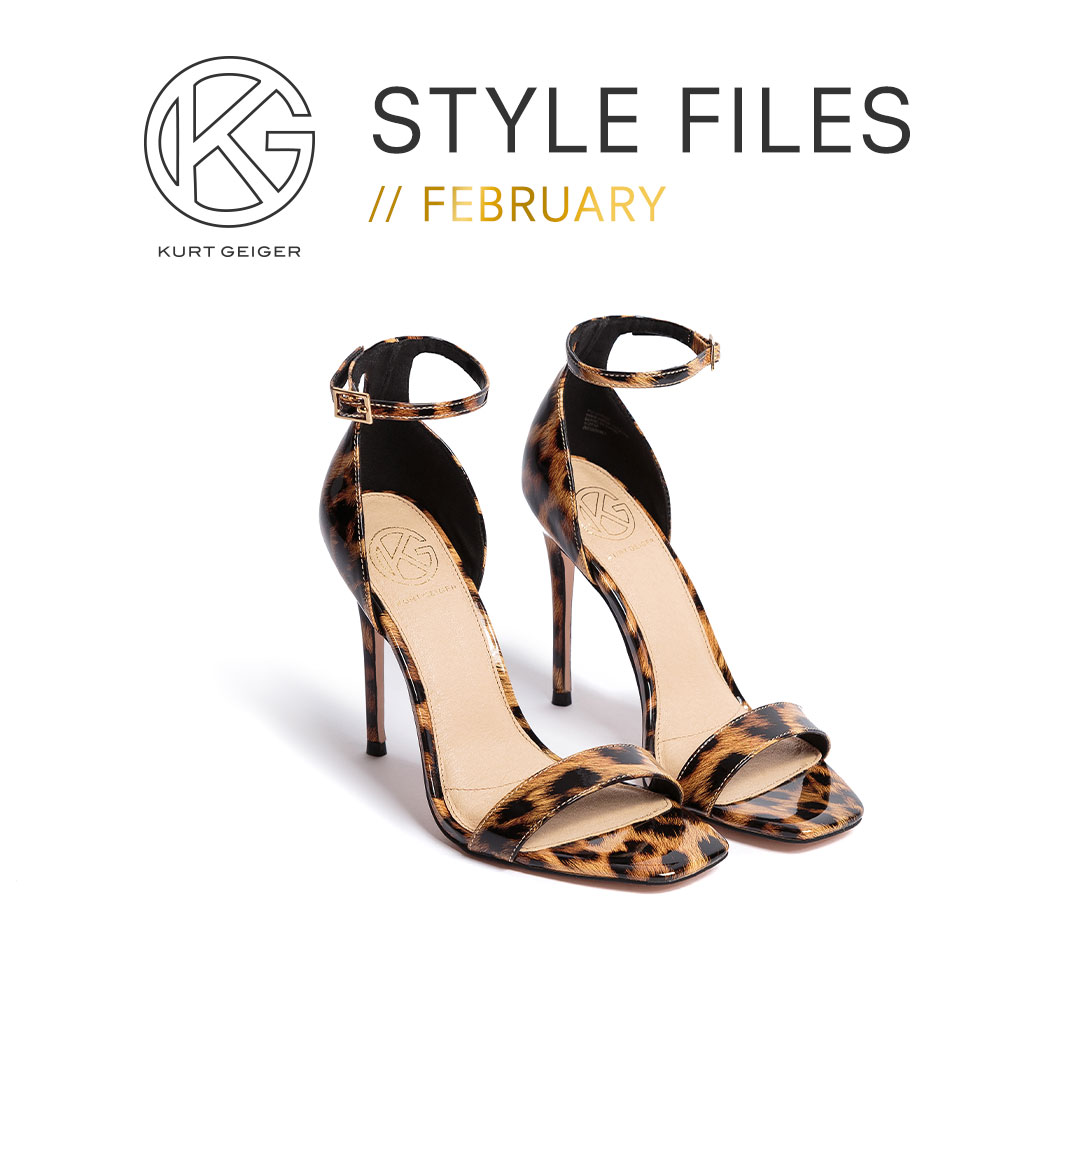 KG Style Files